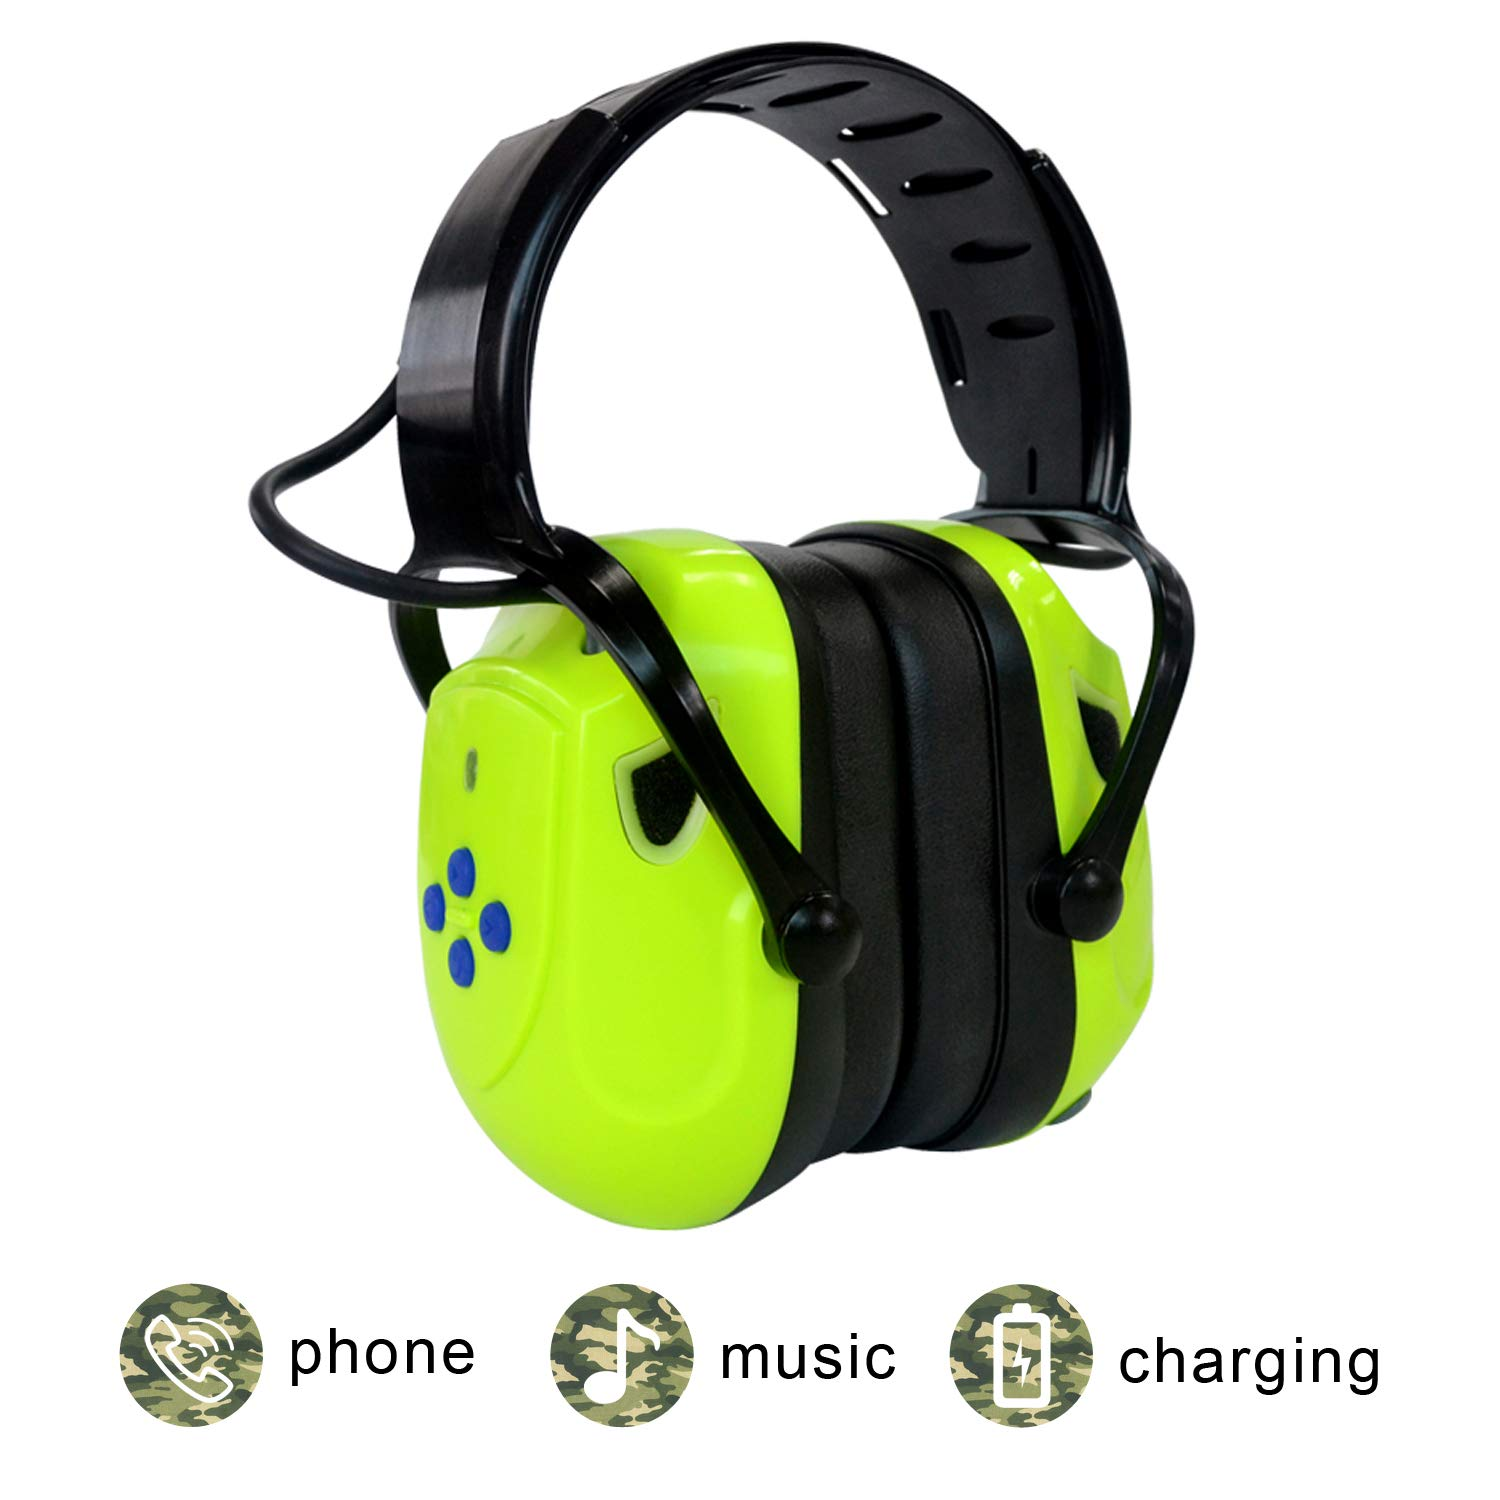 Electronic Shooting Earmuffs, EAREST Rechargeable Bluetooth Ear Muffs Headphone/Sound Amplification Noise Reduction Ear Protection, Ideal for Shooting and Hunting,Fluorescent Green